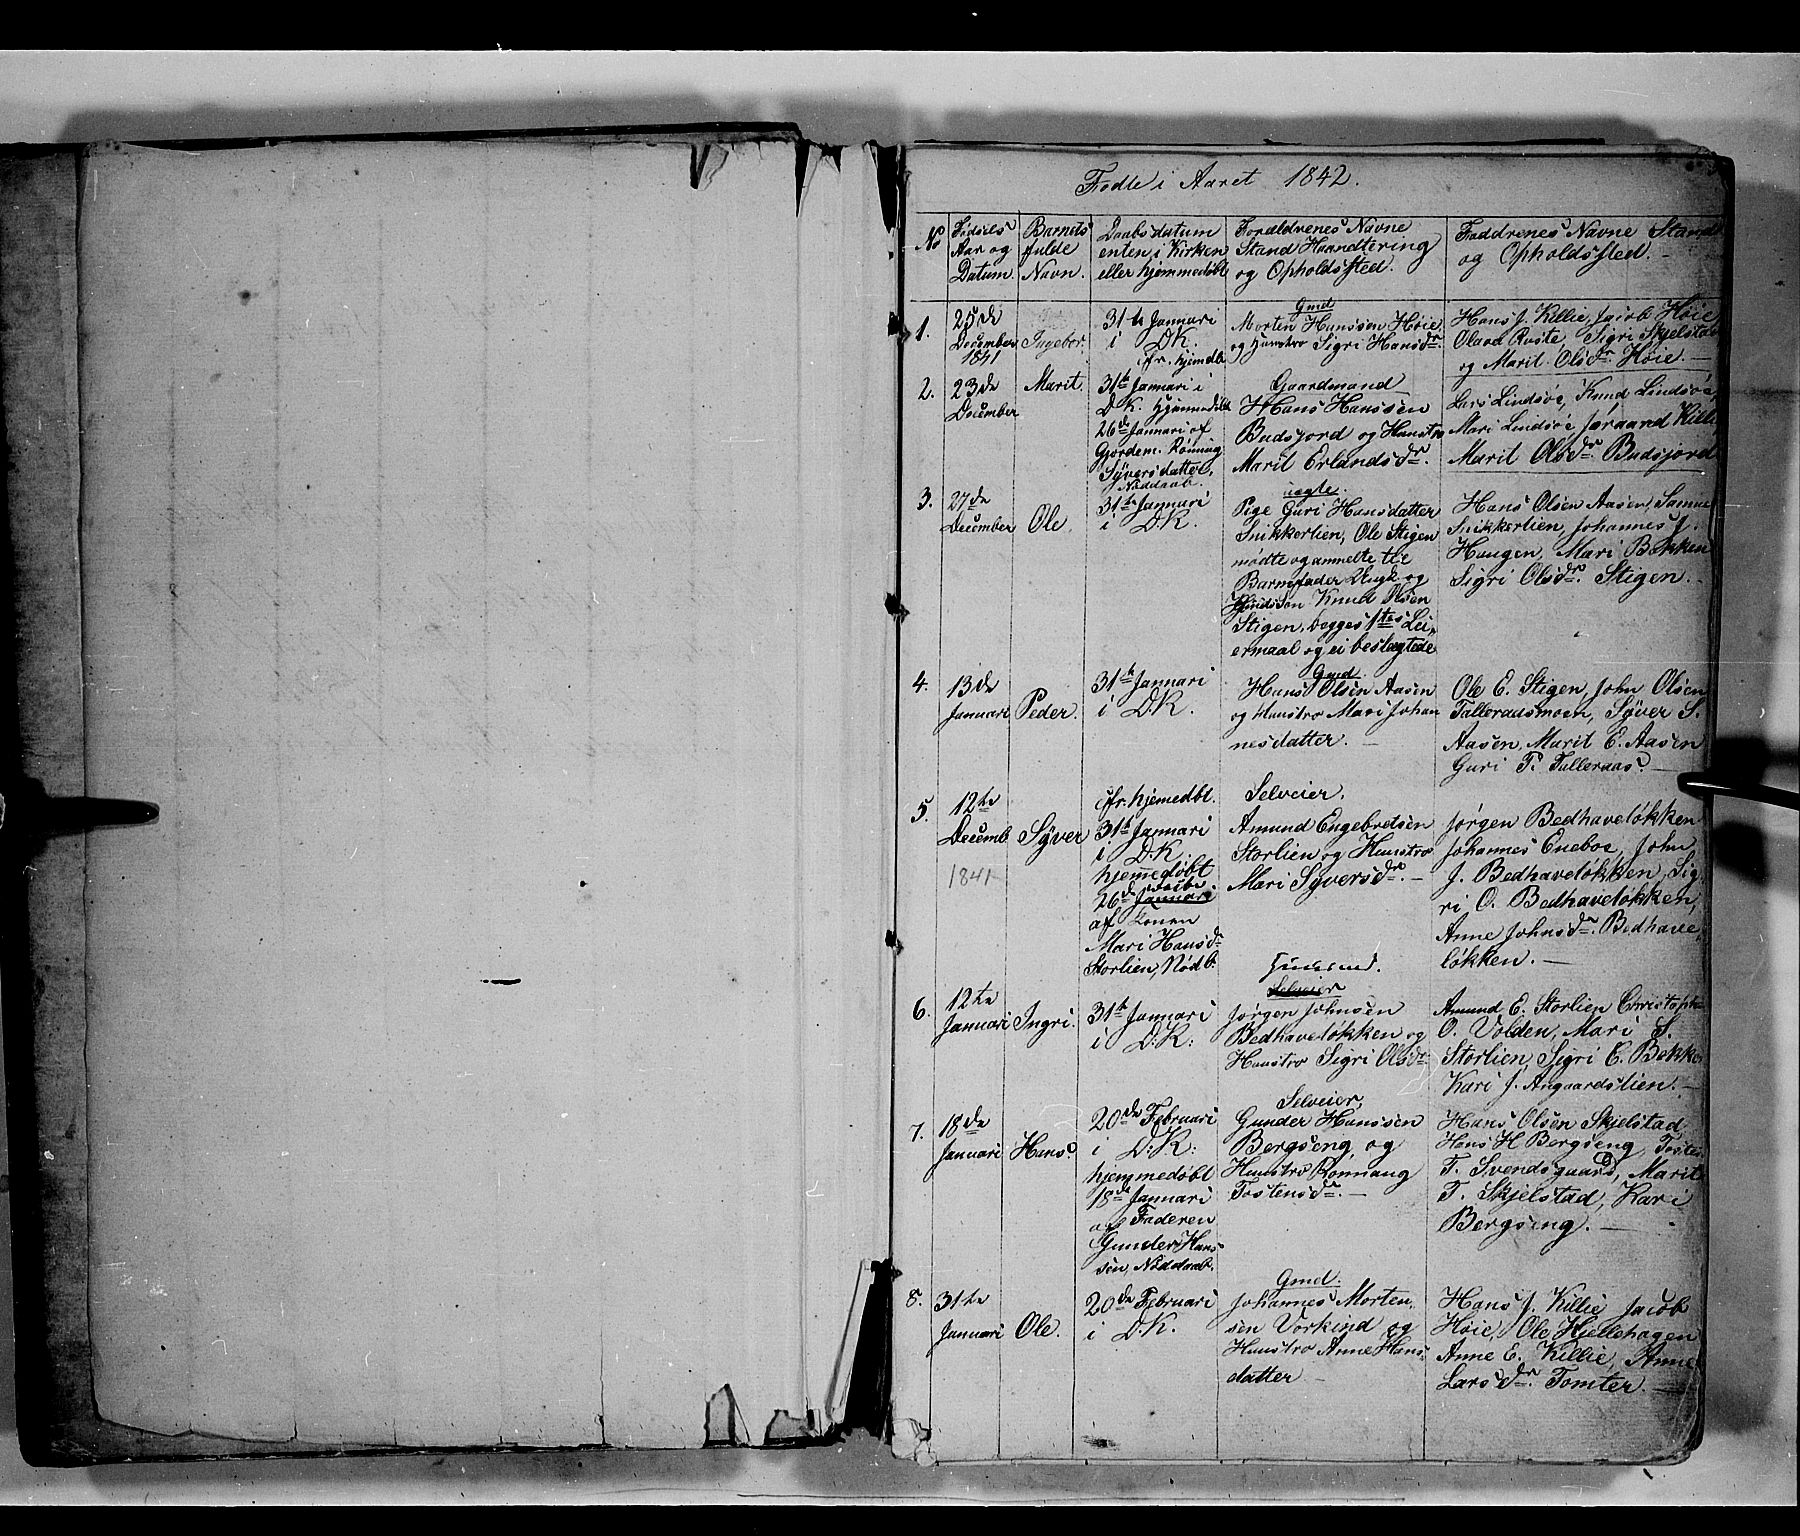 SAH, Lesja prestekontor, Parish register (copy) no. 3, 1842-1862, p. 2-3